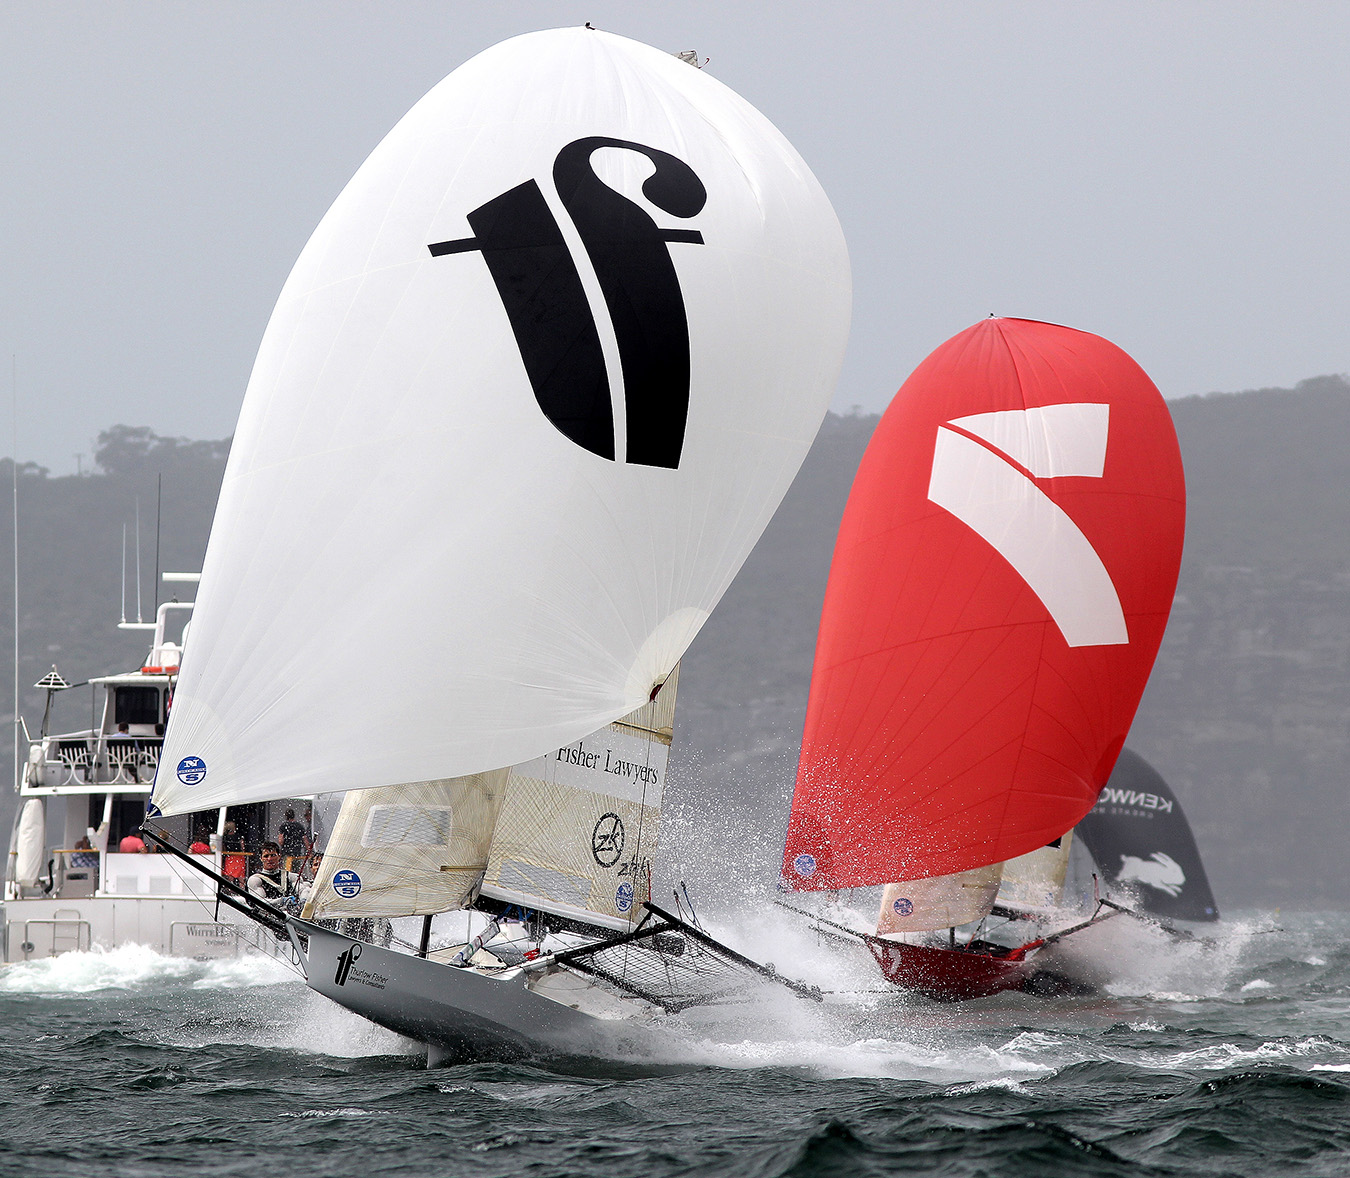 Thurlow Fisher Lawyers leads Gotta Love It 7 down the spinnaker run from the Beashel buoy